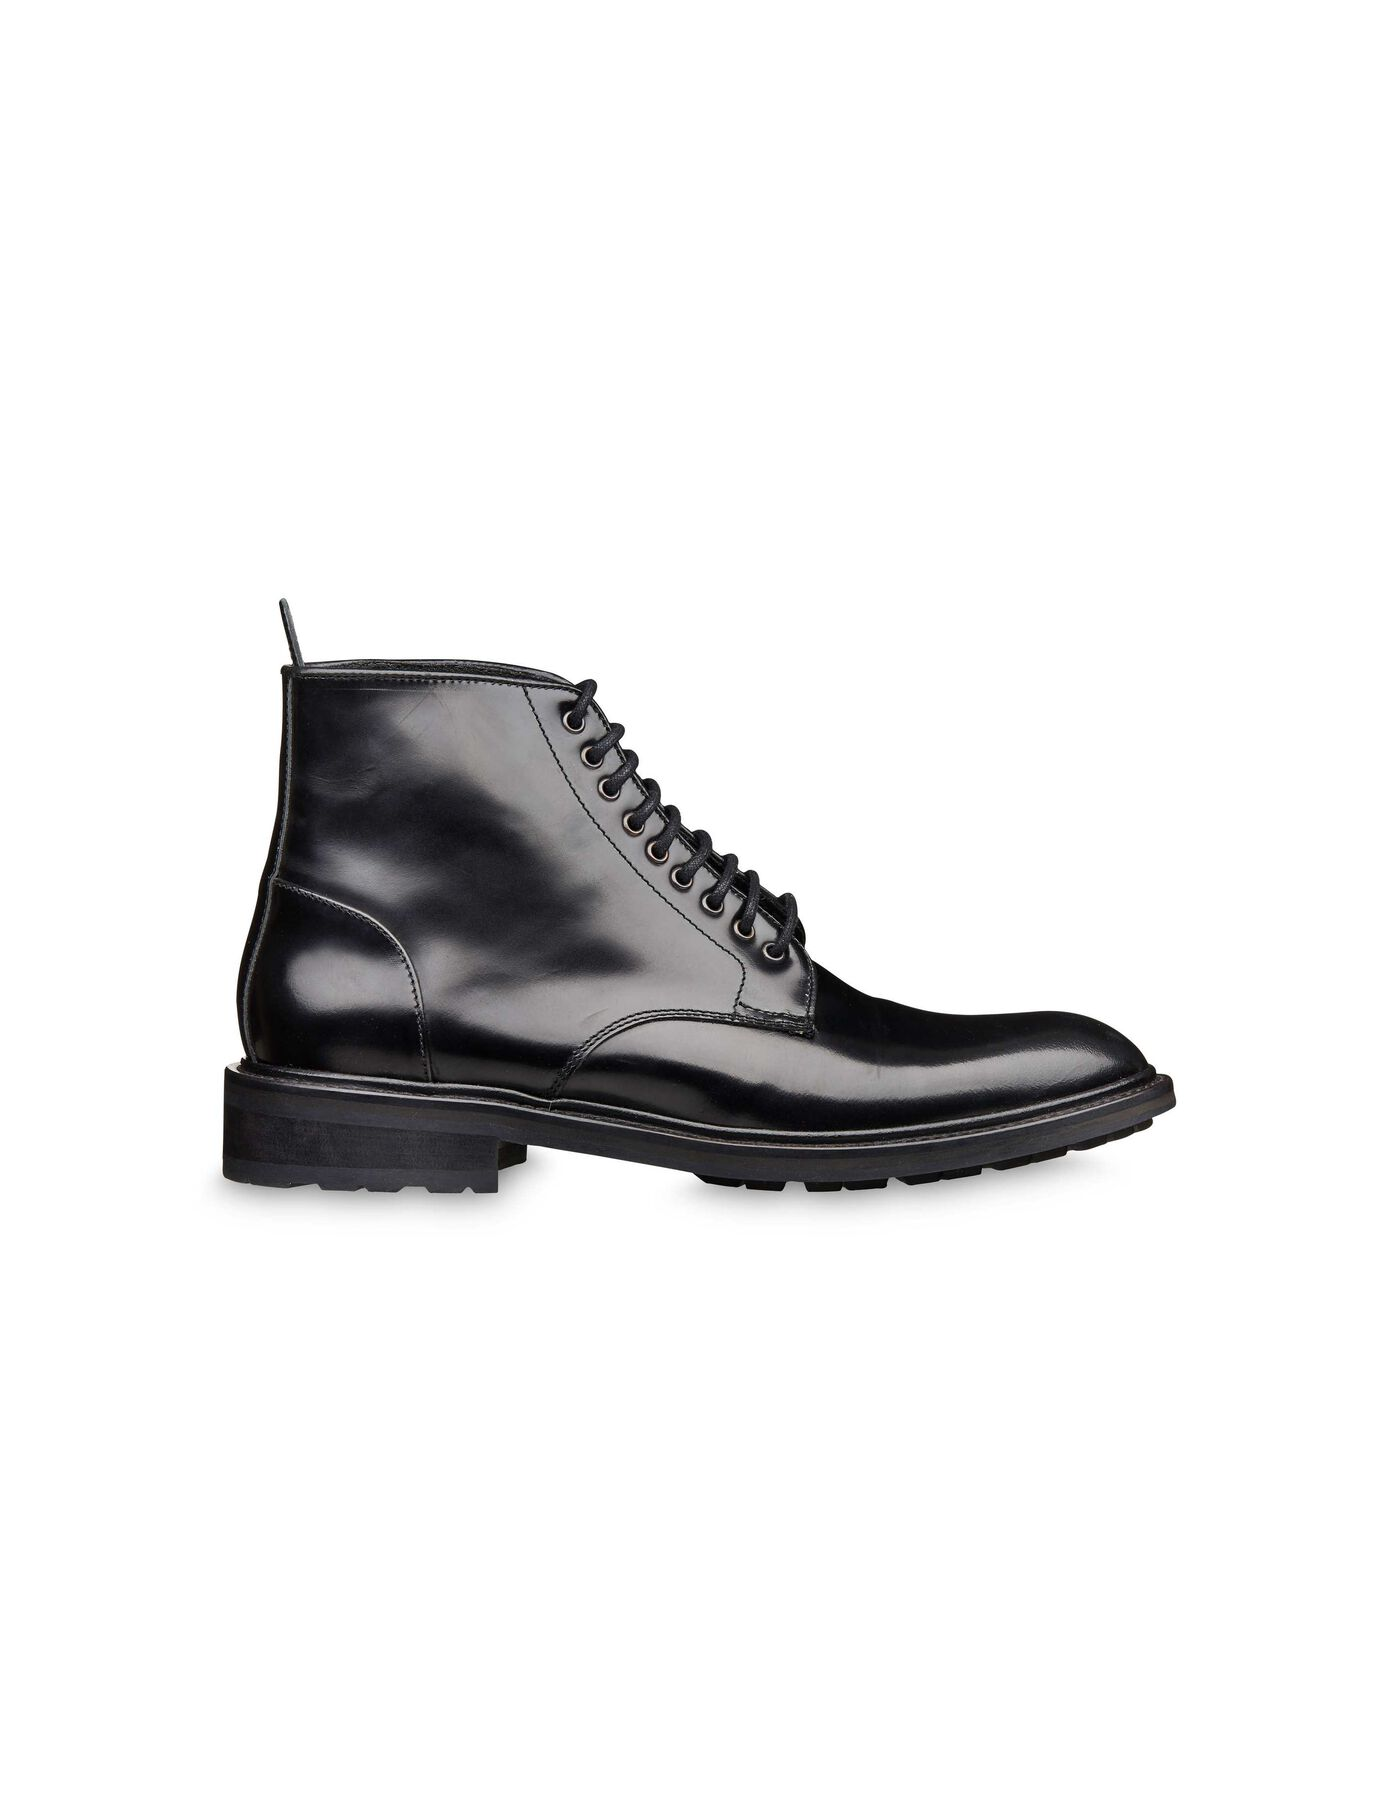 Didcot Po Boots in Black from Tiger of Sweden